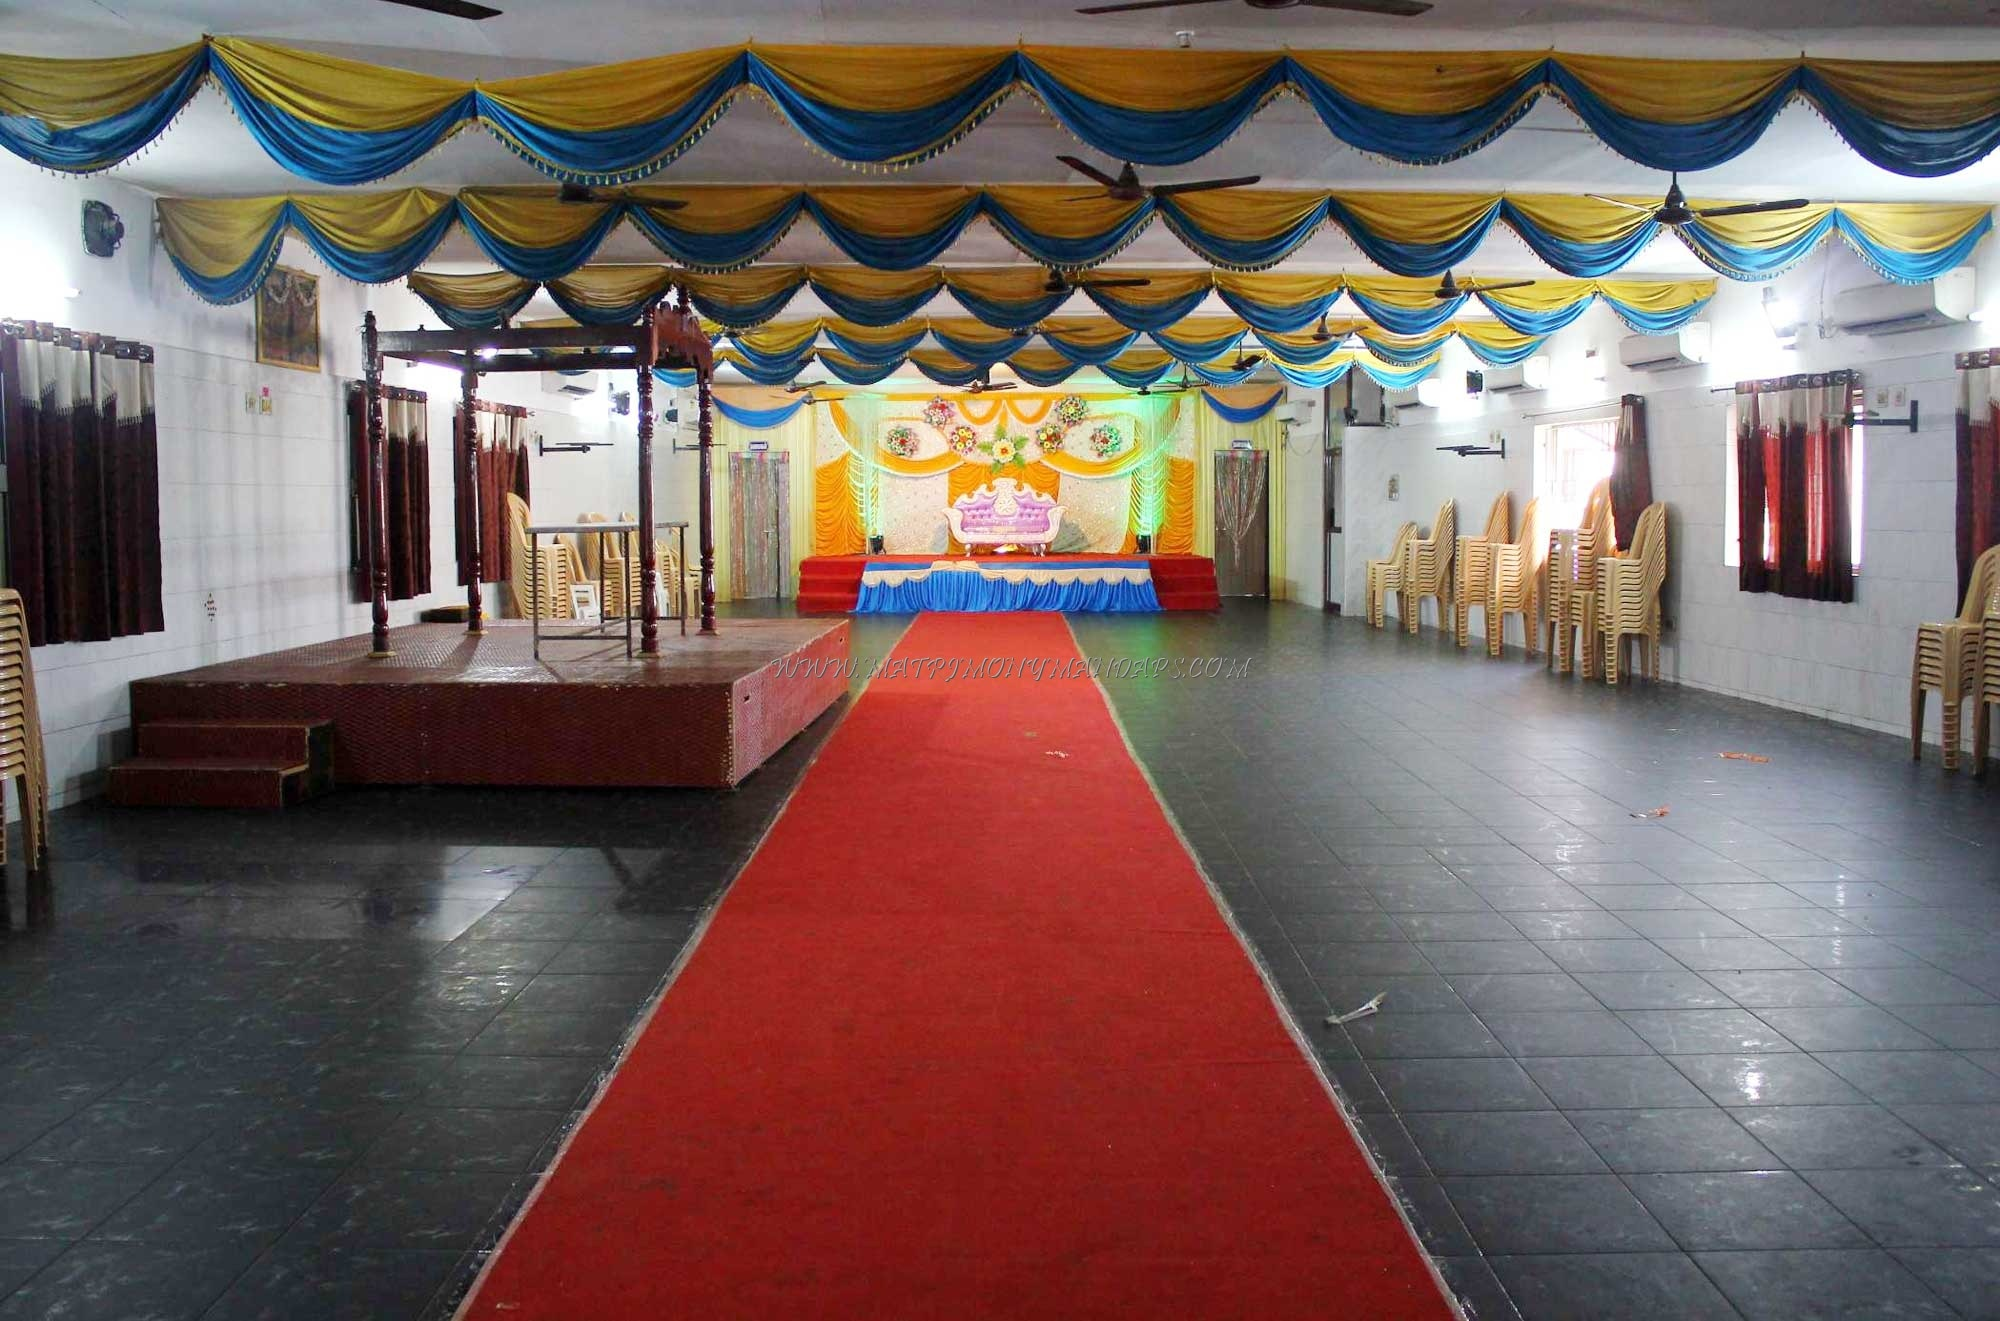 Find the availability of the Kamalammal Thirumana Mandapam (A/C) in Arumbakkam, Chennai and avail special offers